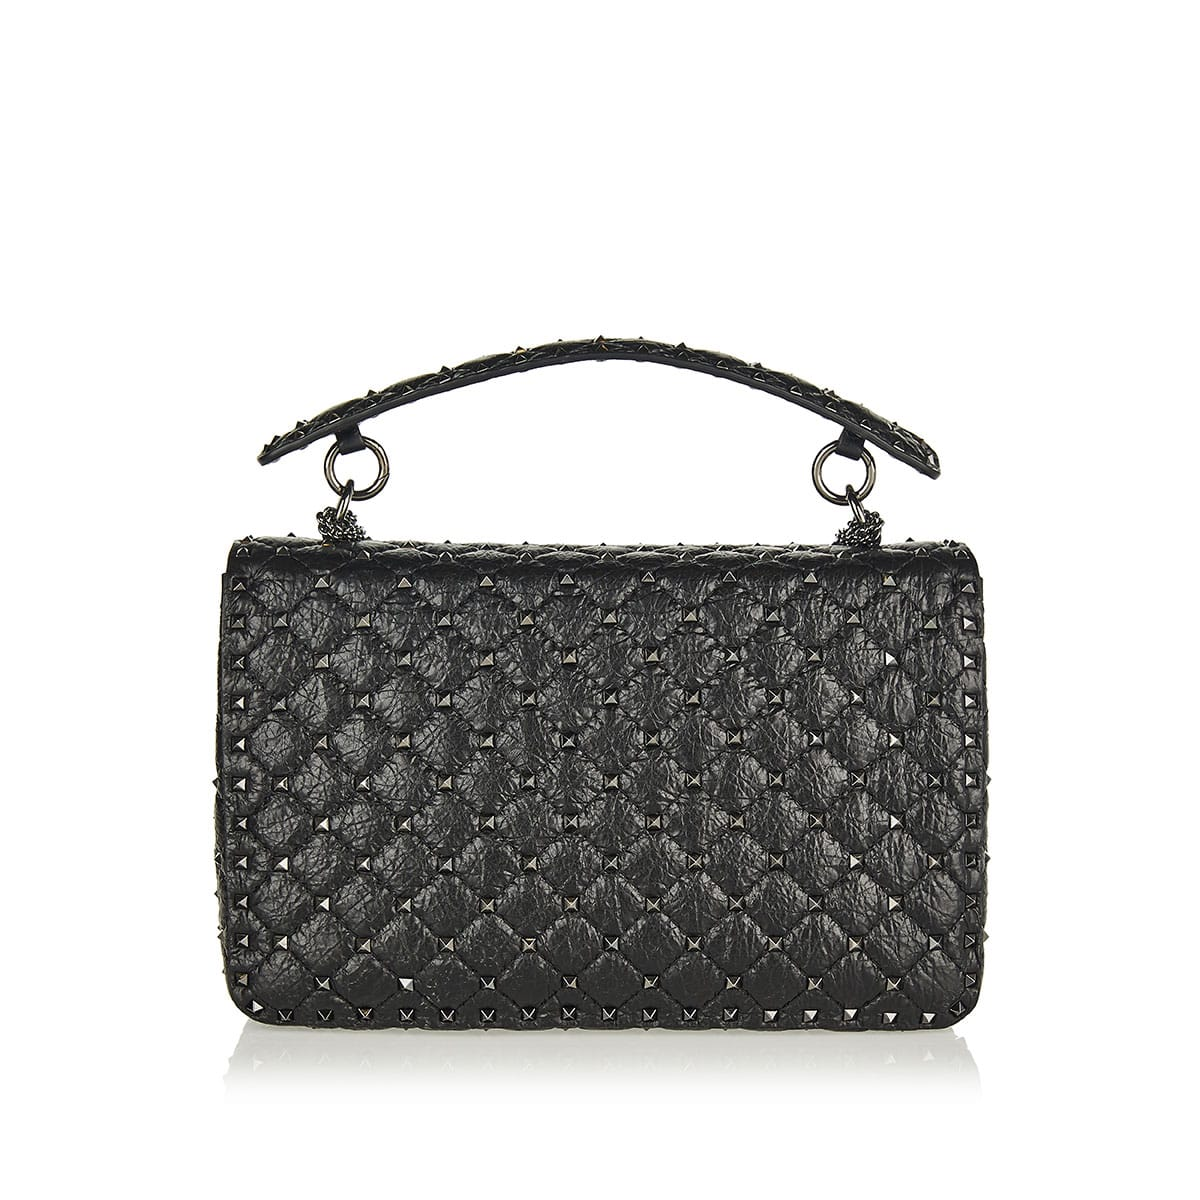 c0bf7e1836 Rockstud Spike crackle-leather chain bag | LuisaWorld